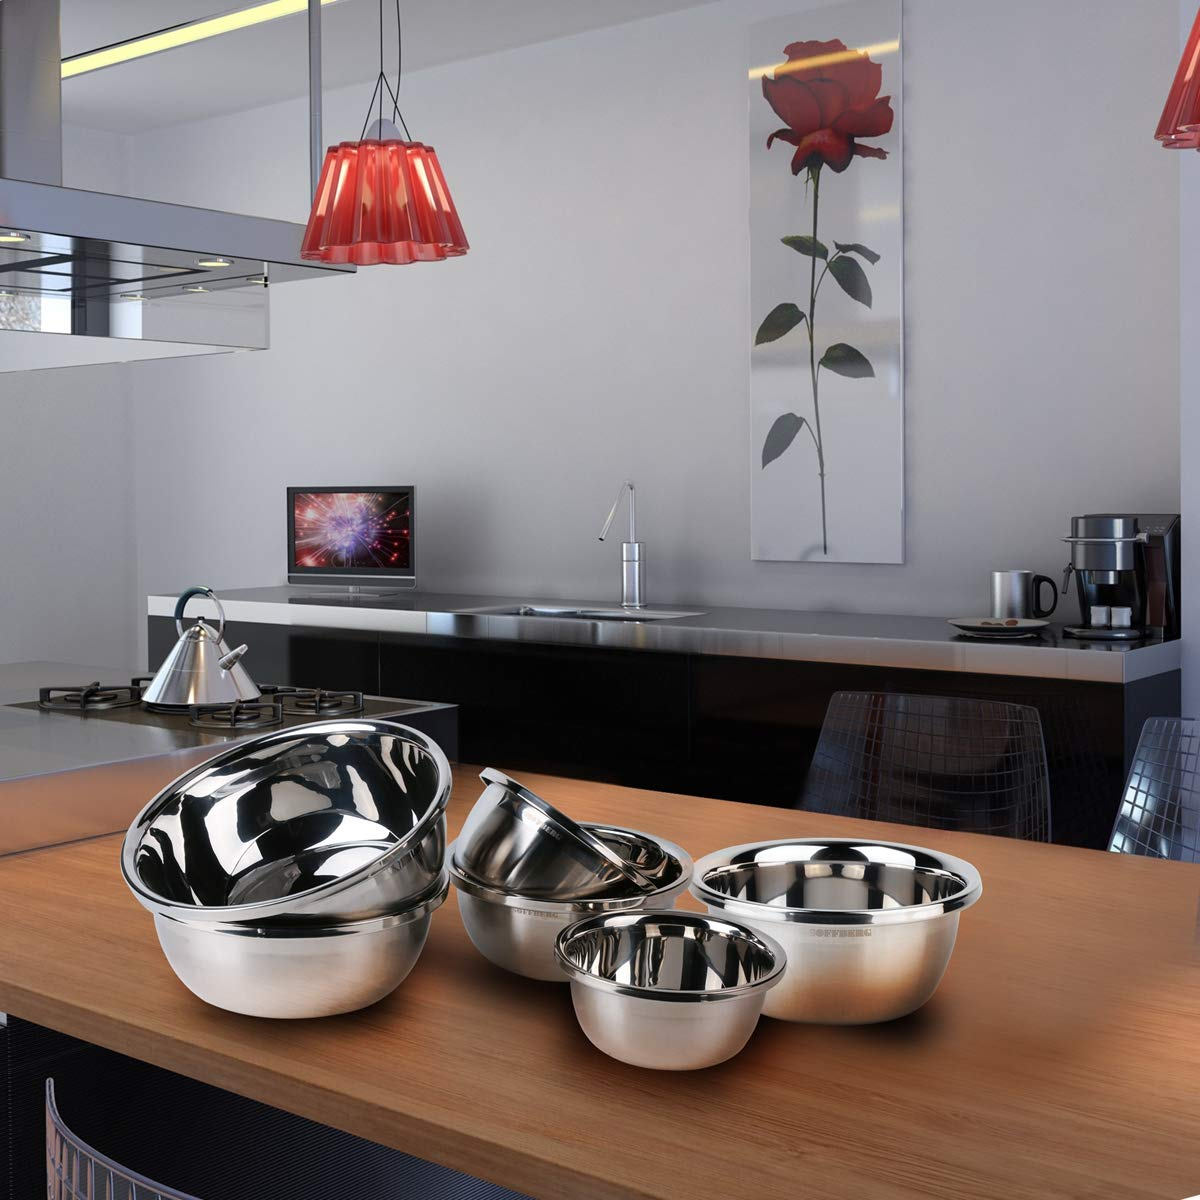 Set of 6 Mixing Bowls Stainless Steel Nesting and Convenient Storage for Meal prep, Salad, Cooking, Baking, Serving by SOFFBERG (Image #7)